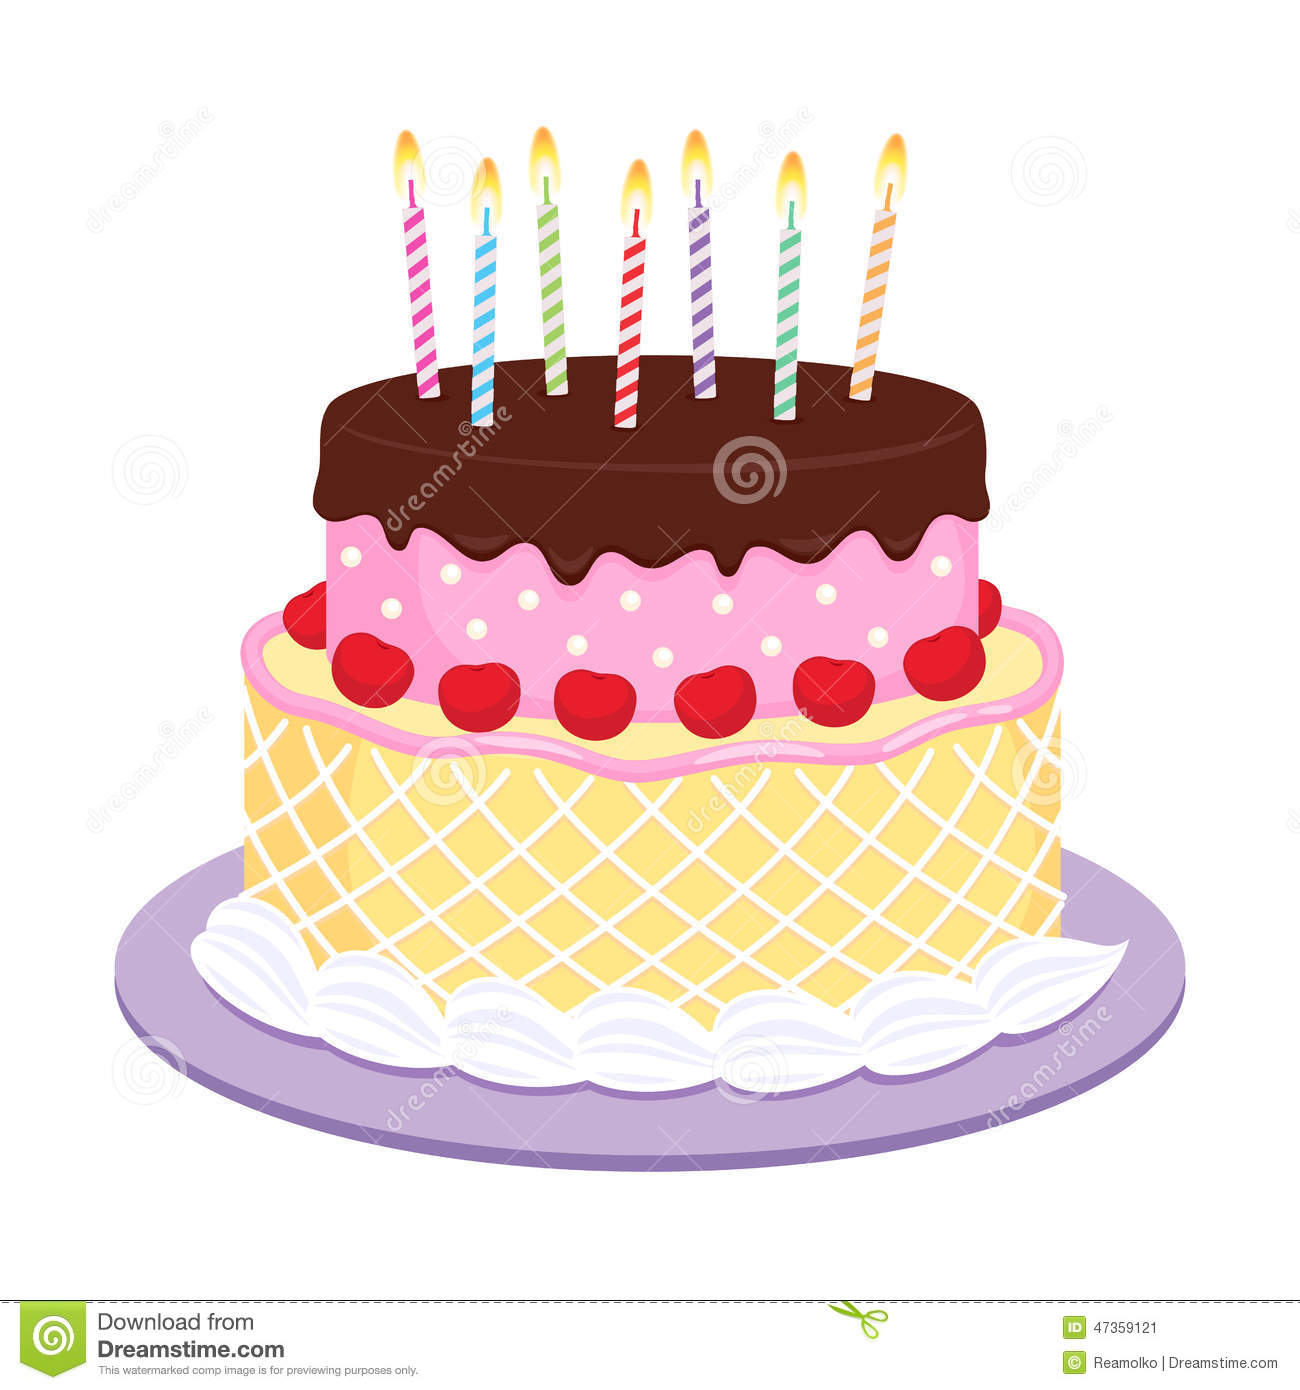 Birthday Cake With Candles Illustration. Stock Vector